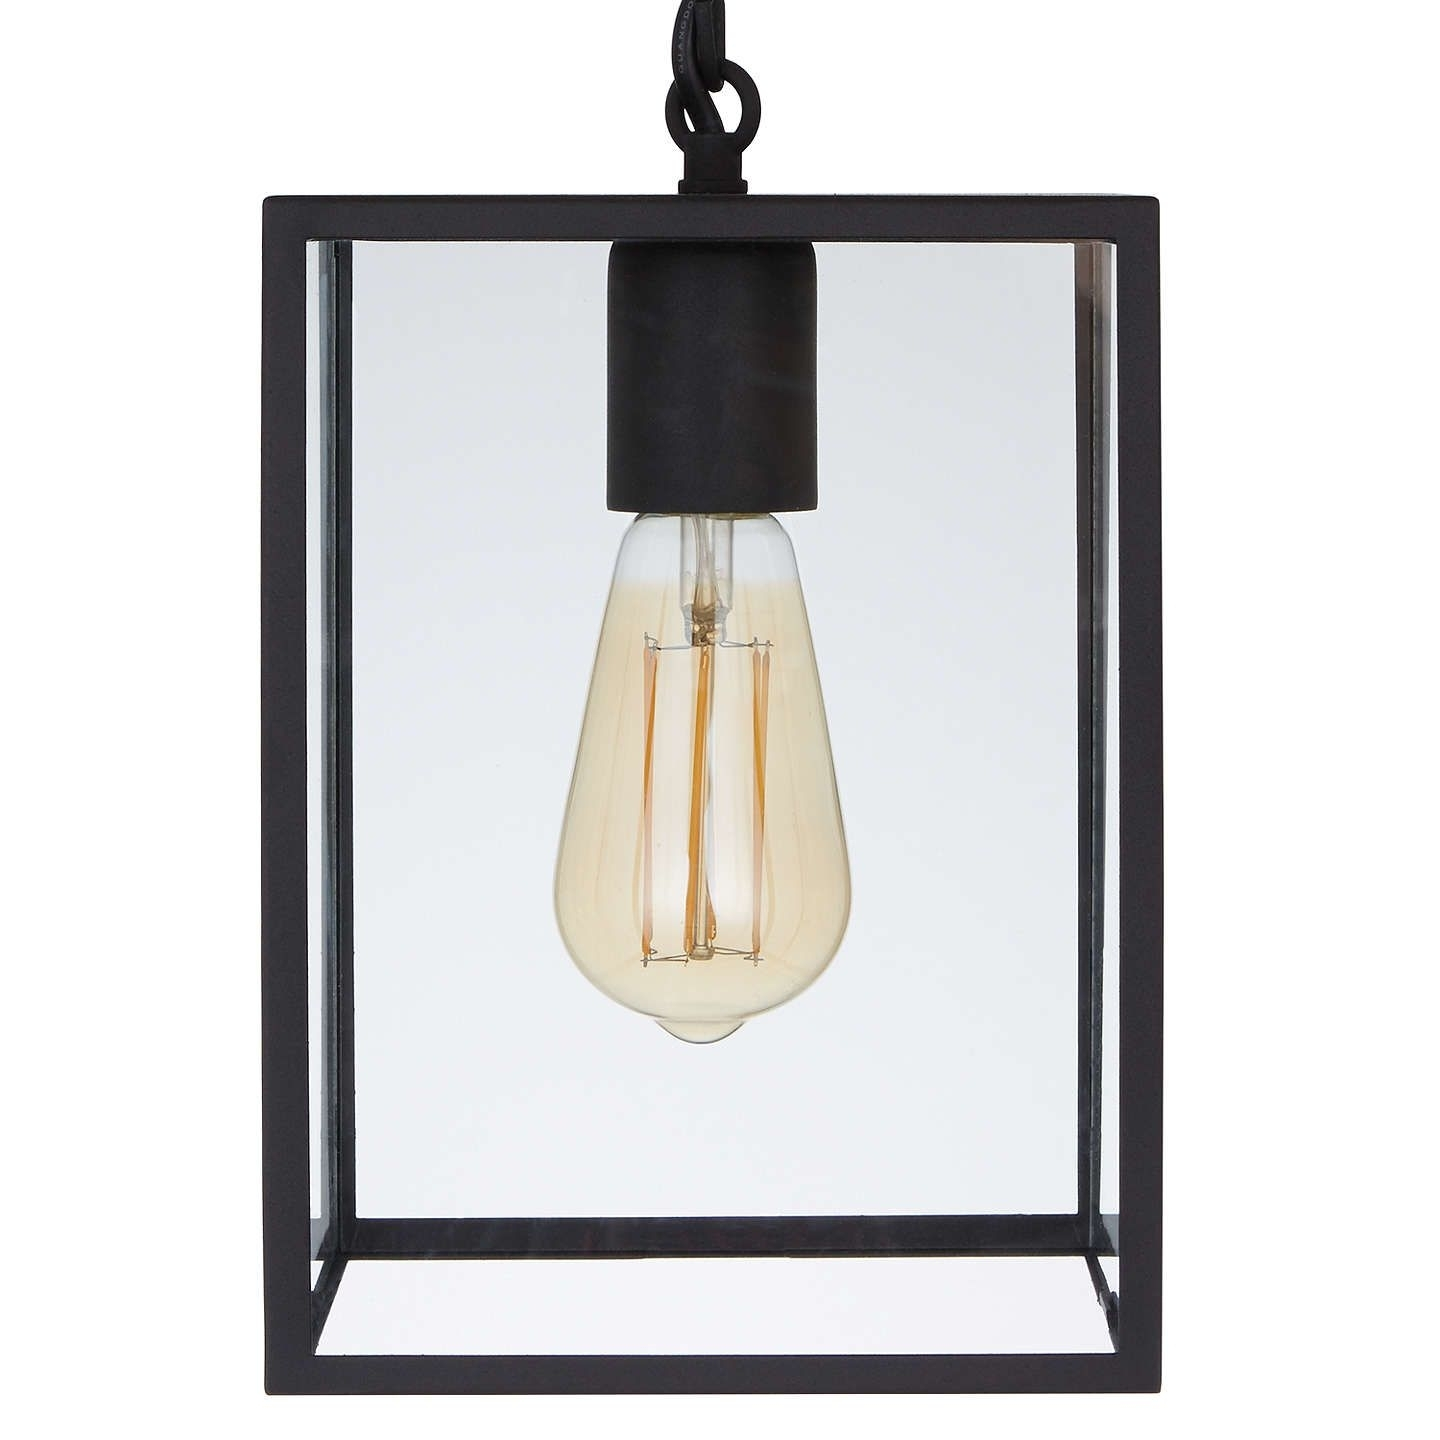 Astro Homefield Outdoor Pendant Ceiling Light, Black | Ceiling, John Throughout John Lewis Outdoor Ceiling Lights (View 4 of 15)